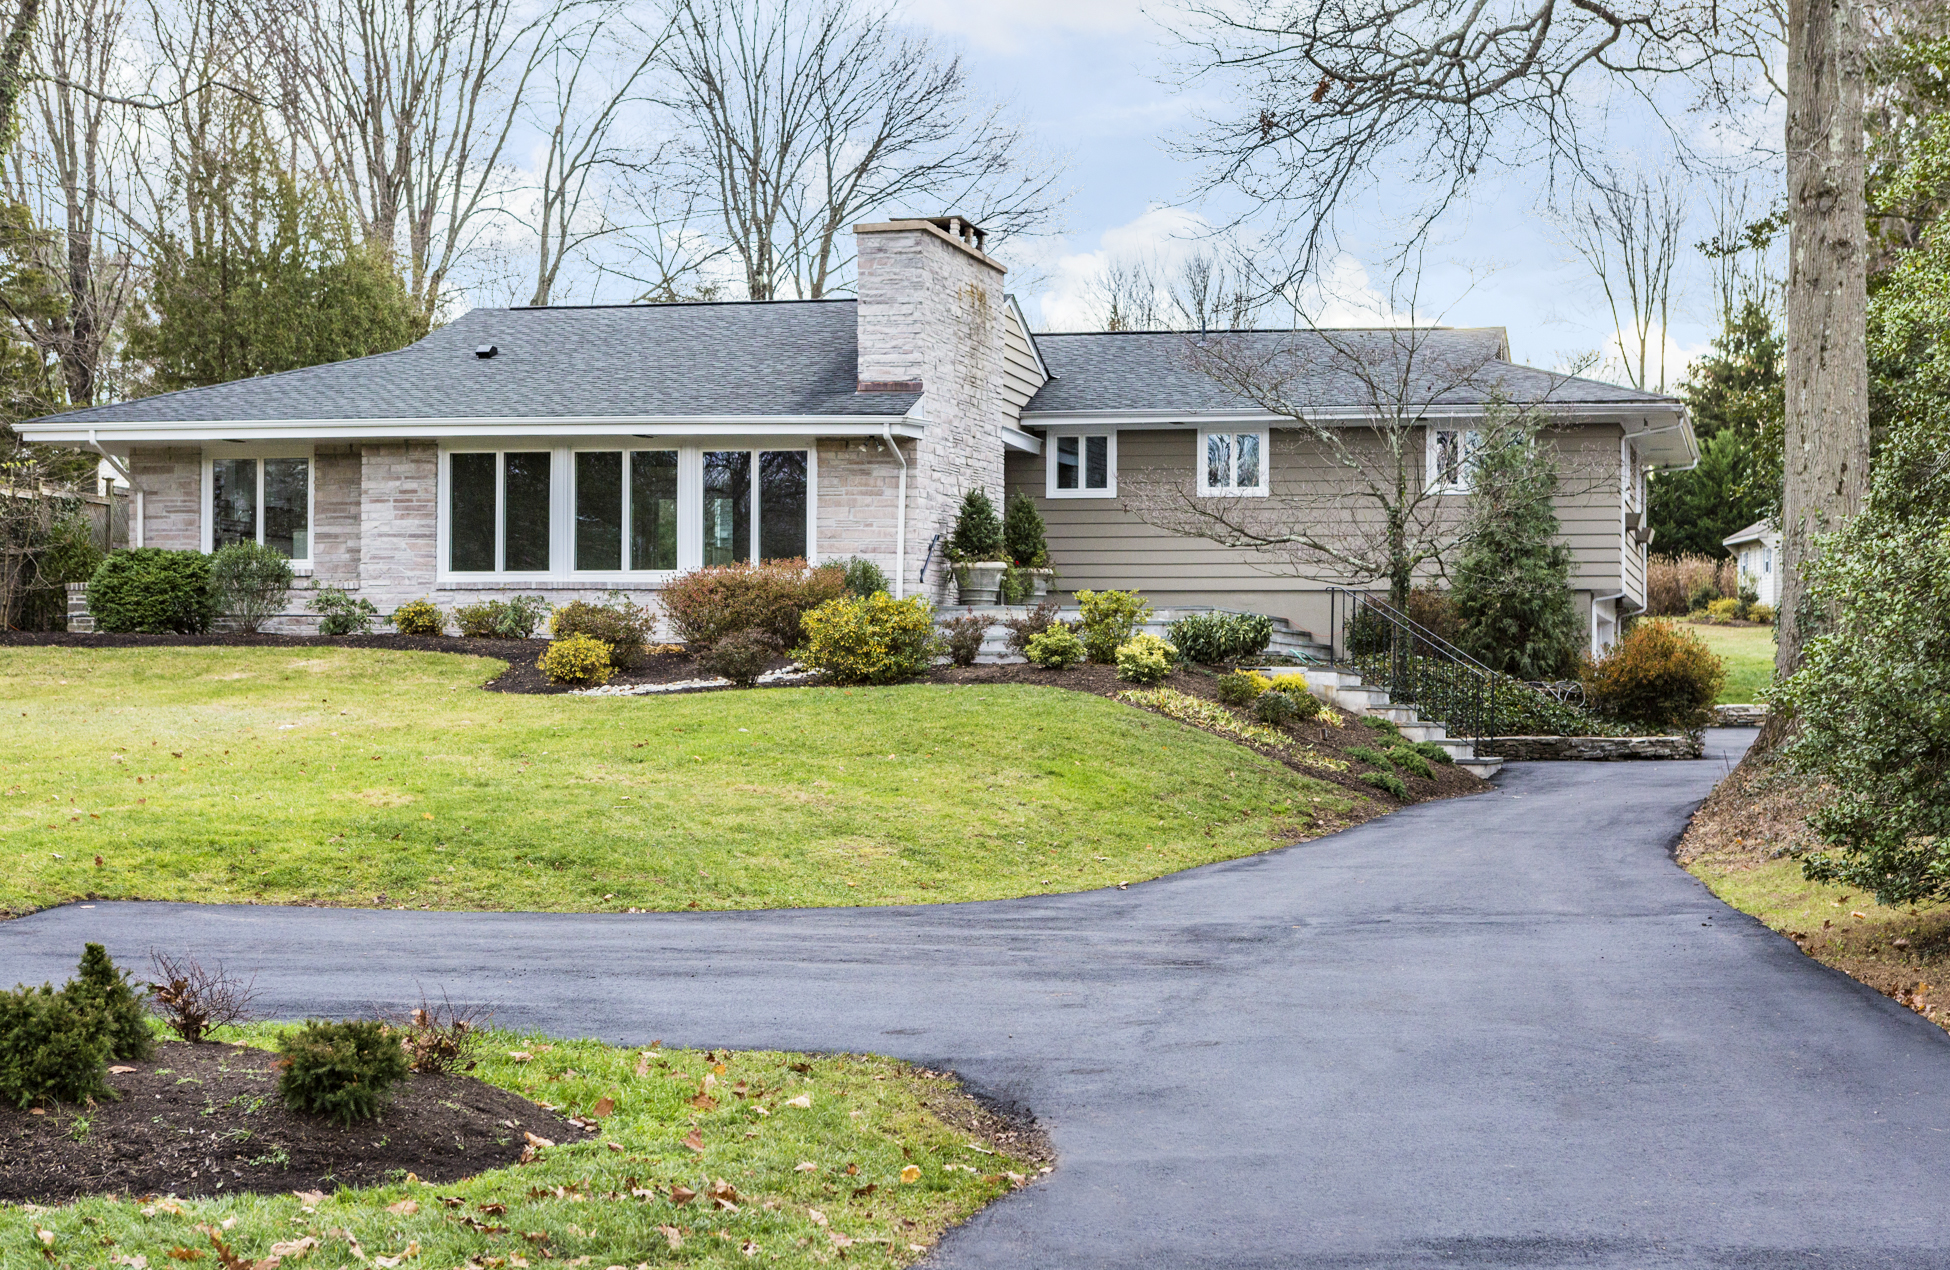 Single Family Home for Sale at Modern Ingenuity Meets Mid-Century Modern 220 King George Road Pennington, New Jersey, 08534 United States